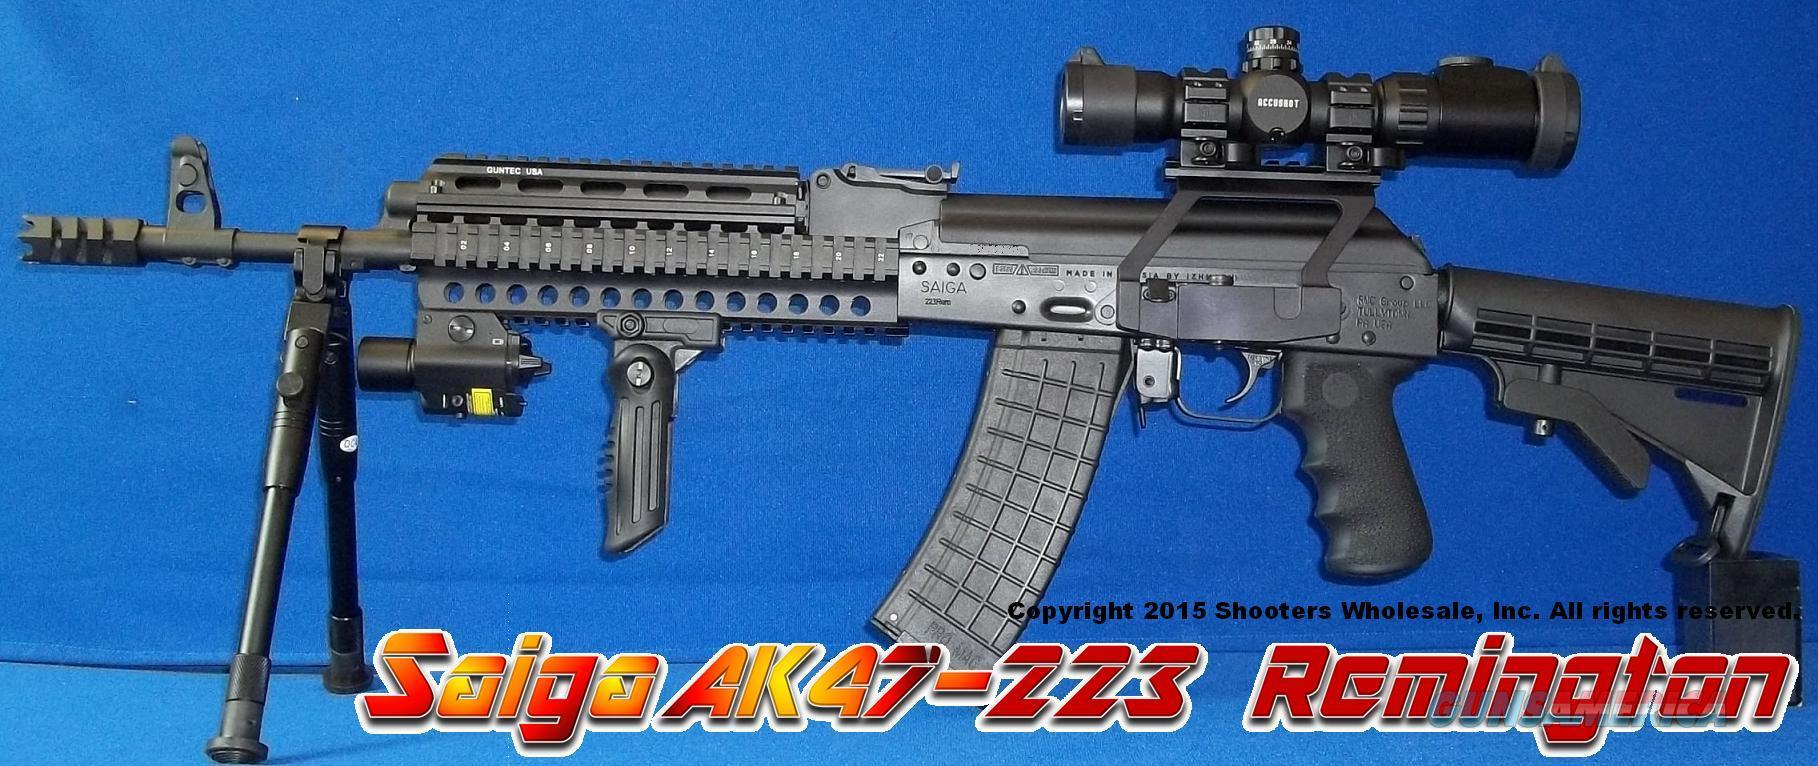 SAIGA RUSSIAN IZHMASH AK47 223 REMINGTON-FULL PROFESSIONAL TACTICAL CONVERSION! GUN-KOTE+ETCHED GLASS SCOPE+QUICK DETACH SIDERAIL MOUNT+250 LUMEN LED/RED LASER COMBO+BIPOD+QUAD RAIL+COLLAPSIBLE STOCK+SPIKE MUZZLE BREAK+TWO 30RD MAGS+MORE!  Guns > Rifles > Saiga Rifles